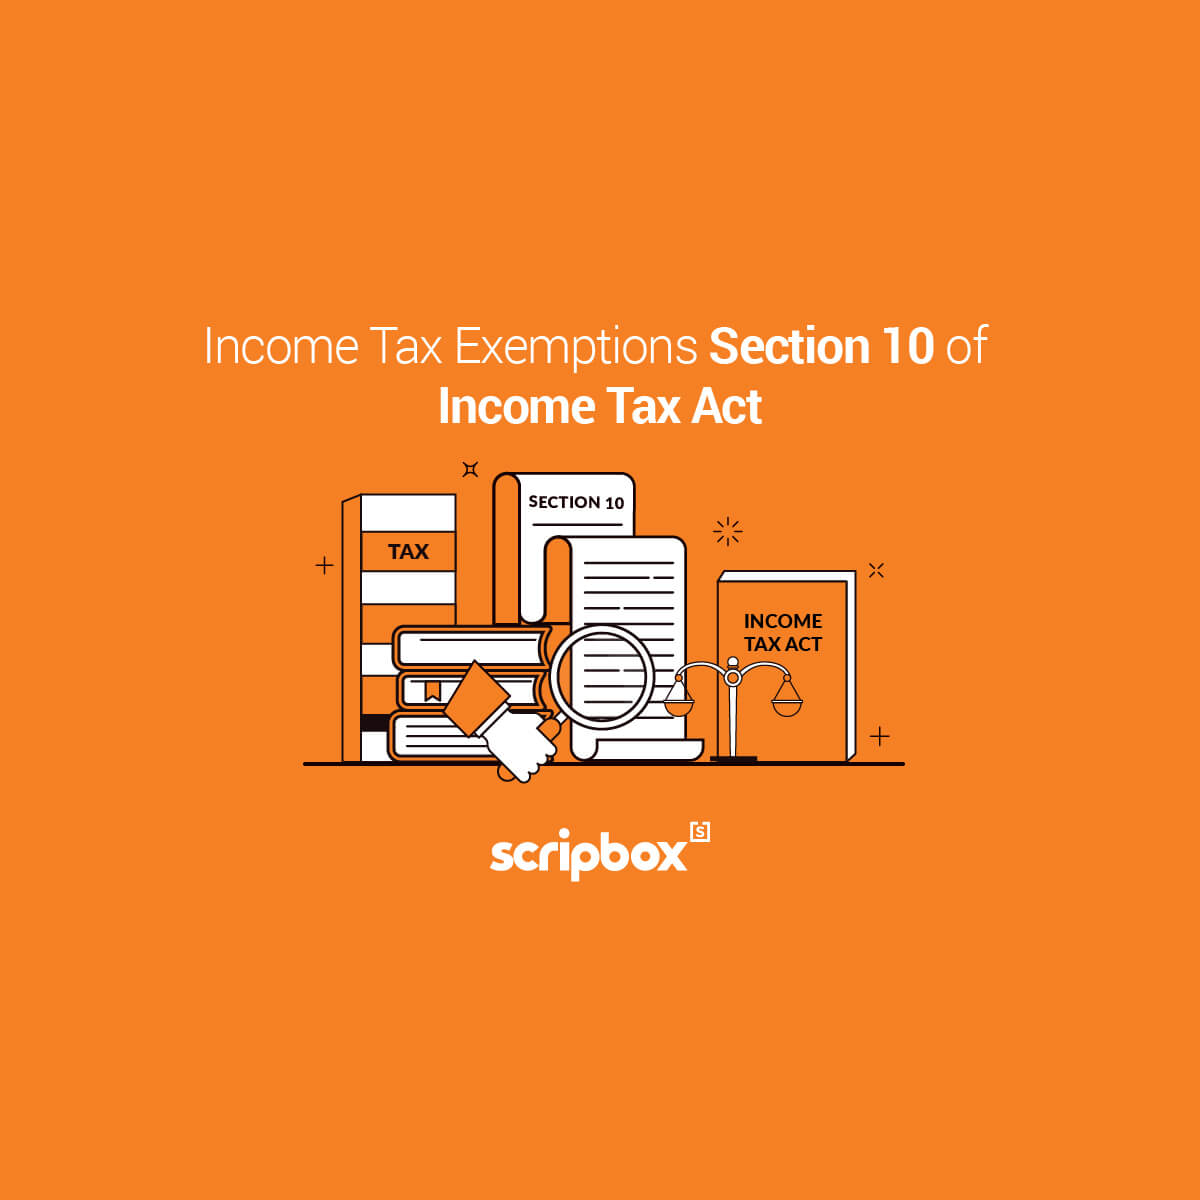 section 10 of income tax act